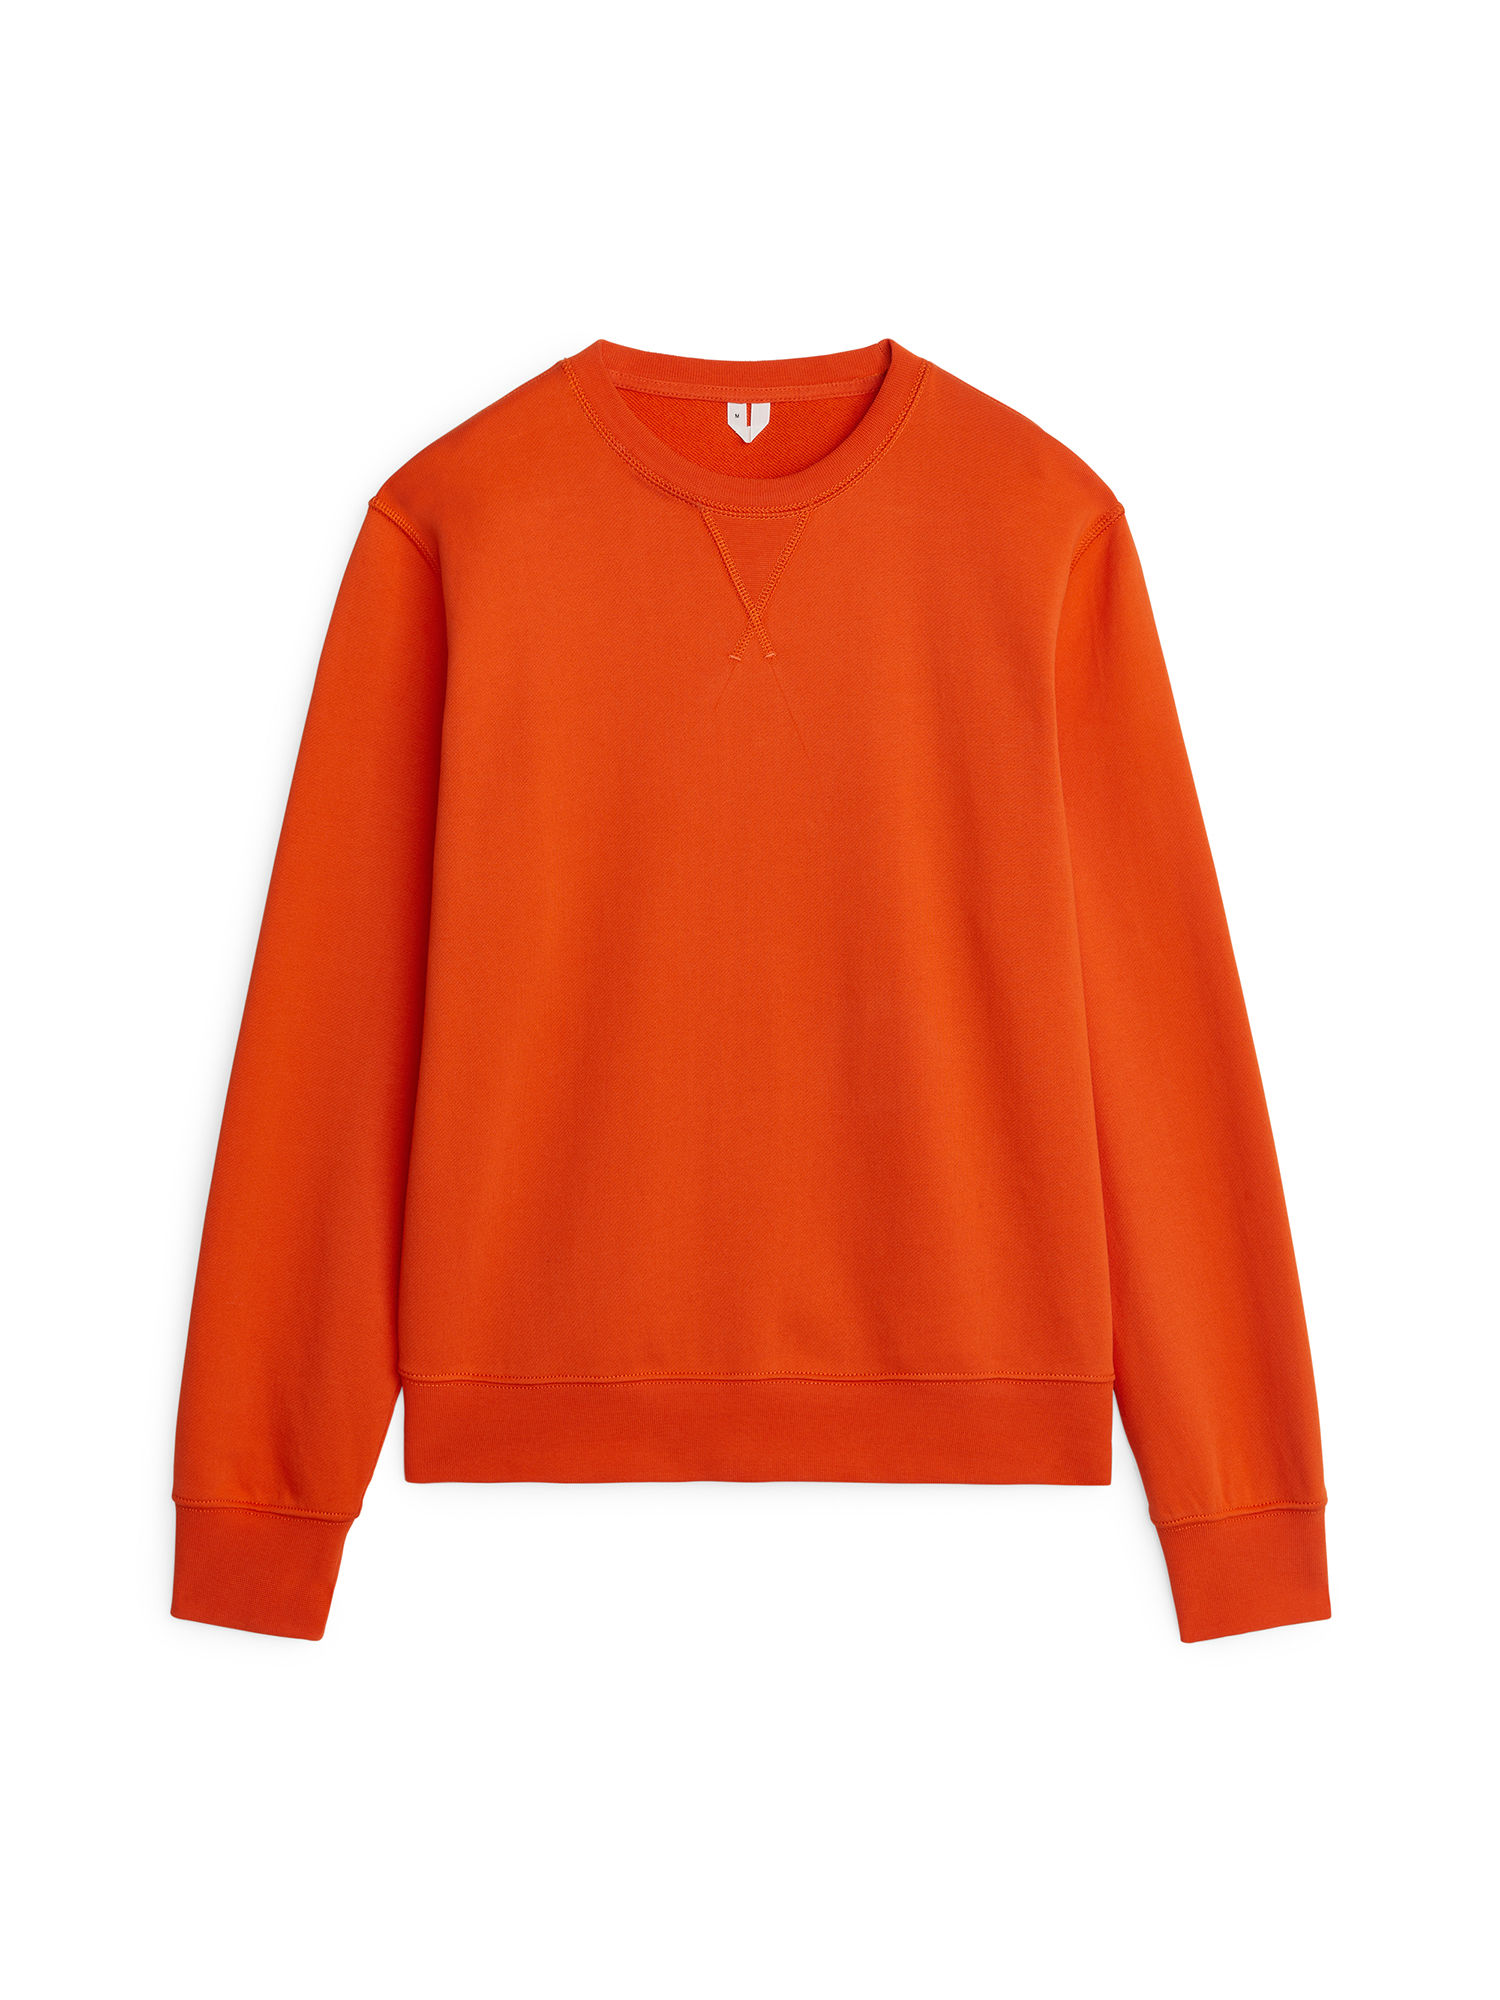 Fabric Swatch image of Arket 340 gsm french terry sweatshirt in orange